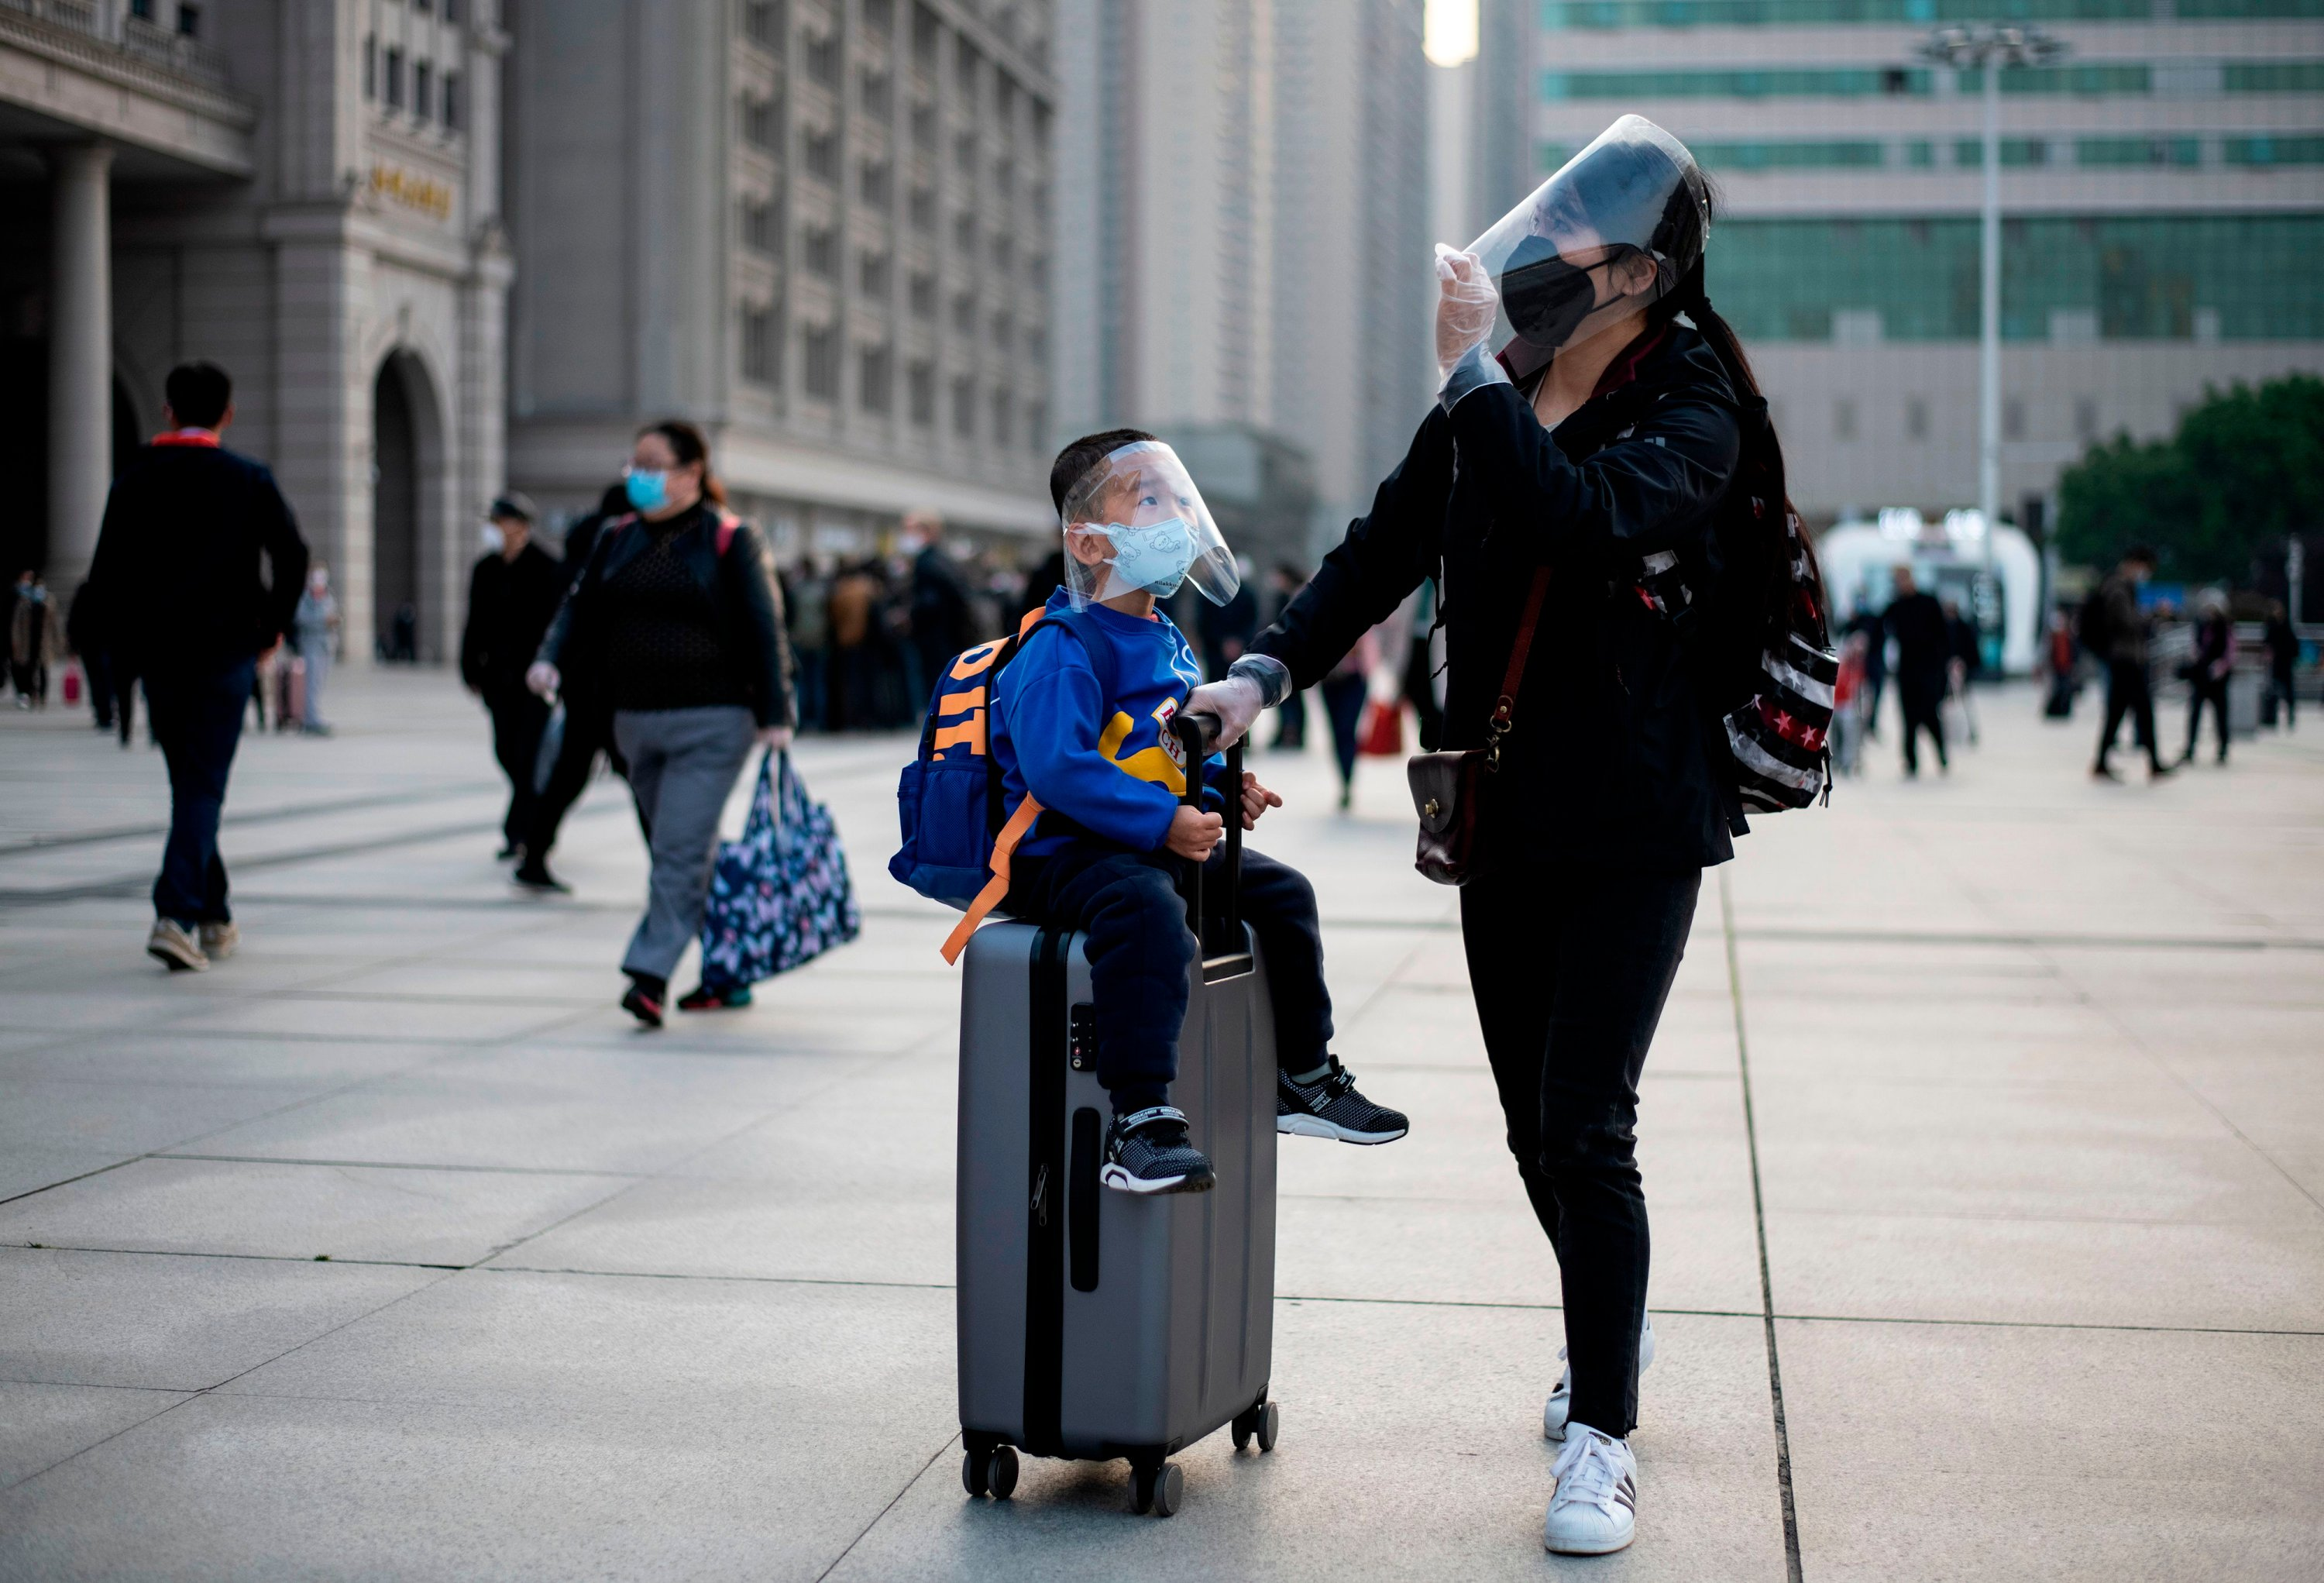 A woman and her child wearing face masks arrive at Hankou railway station to take one of the first trains leaving Wuhan, Hubei province, China early Wednesday, April 8, 2020. (AFP Photo)